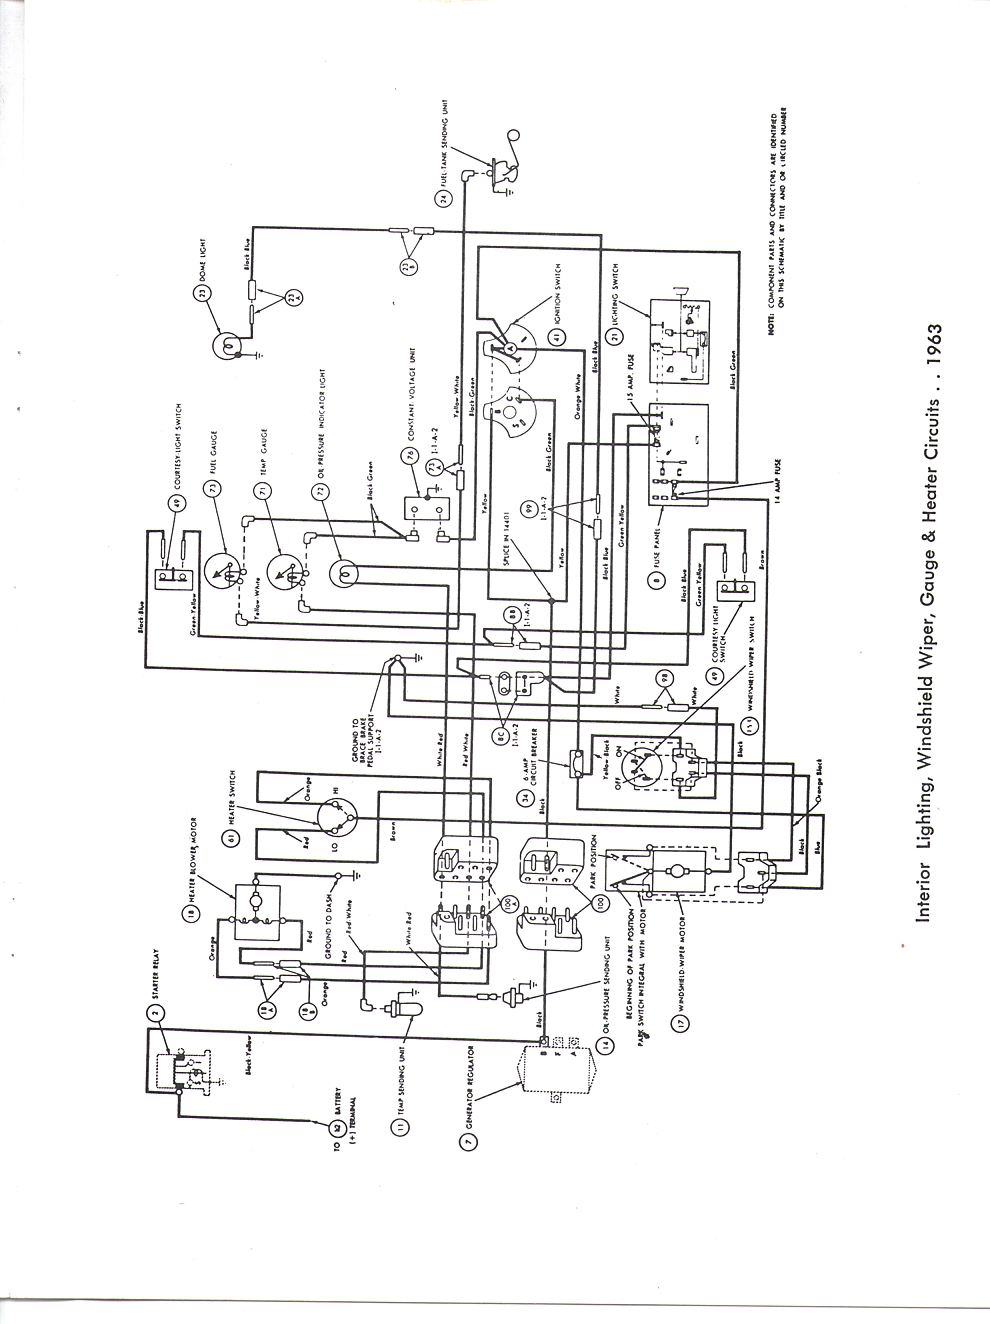 2006 dodge caravan steering column parts diagram  dodge